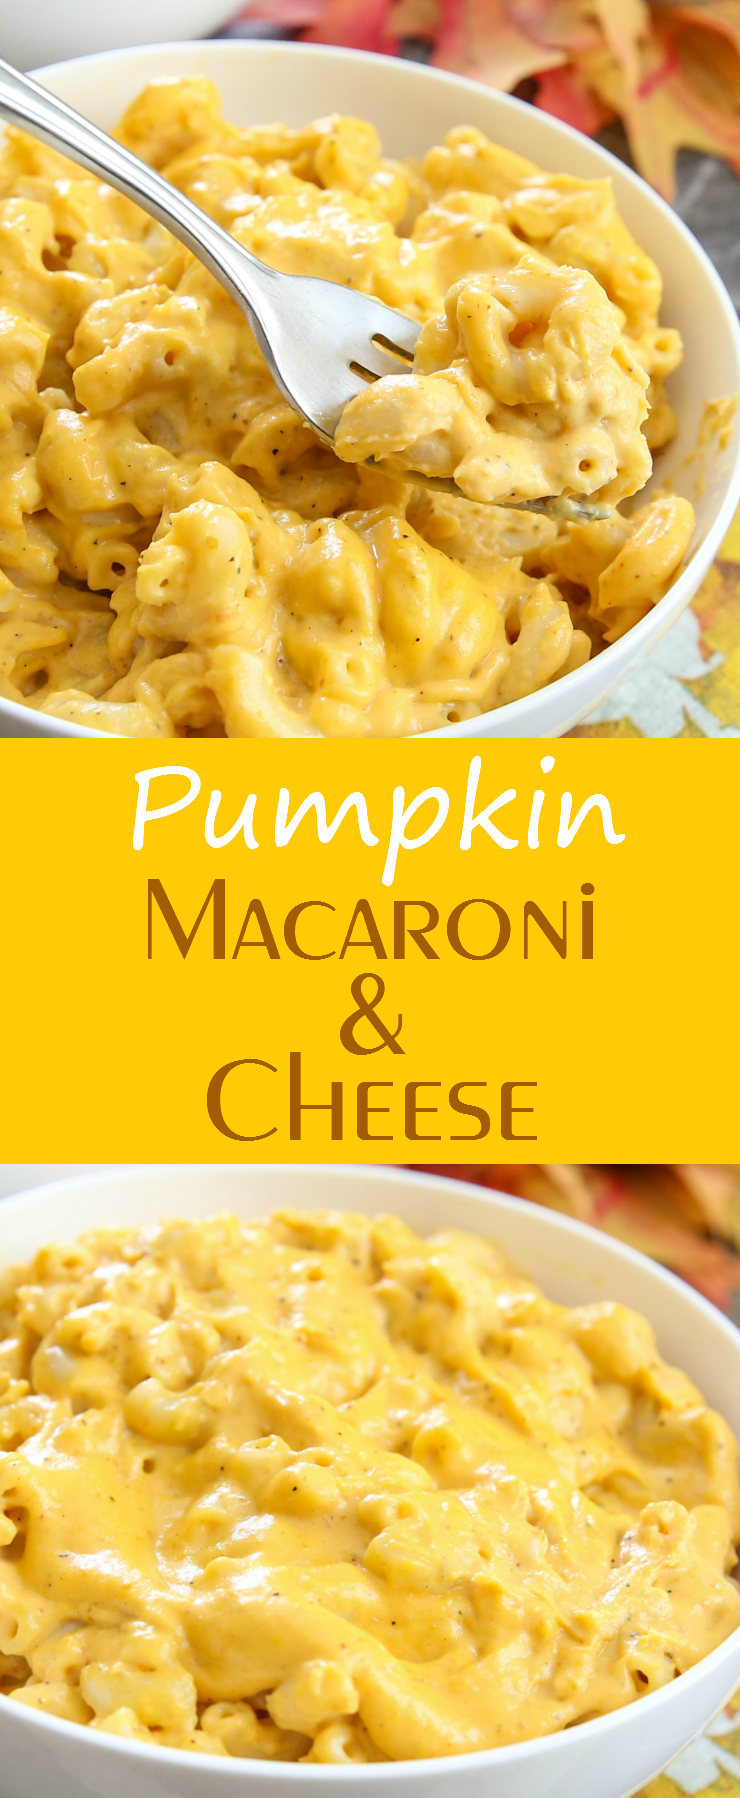 photo collage of Pumpkin Macaroni and Cheese